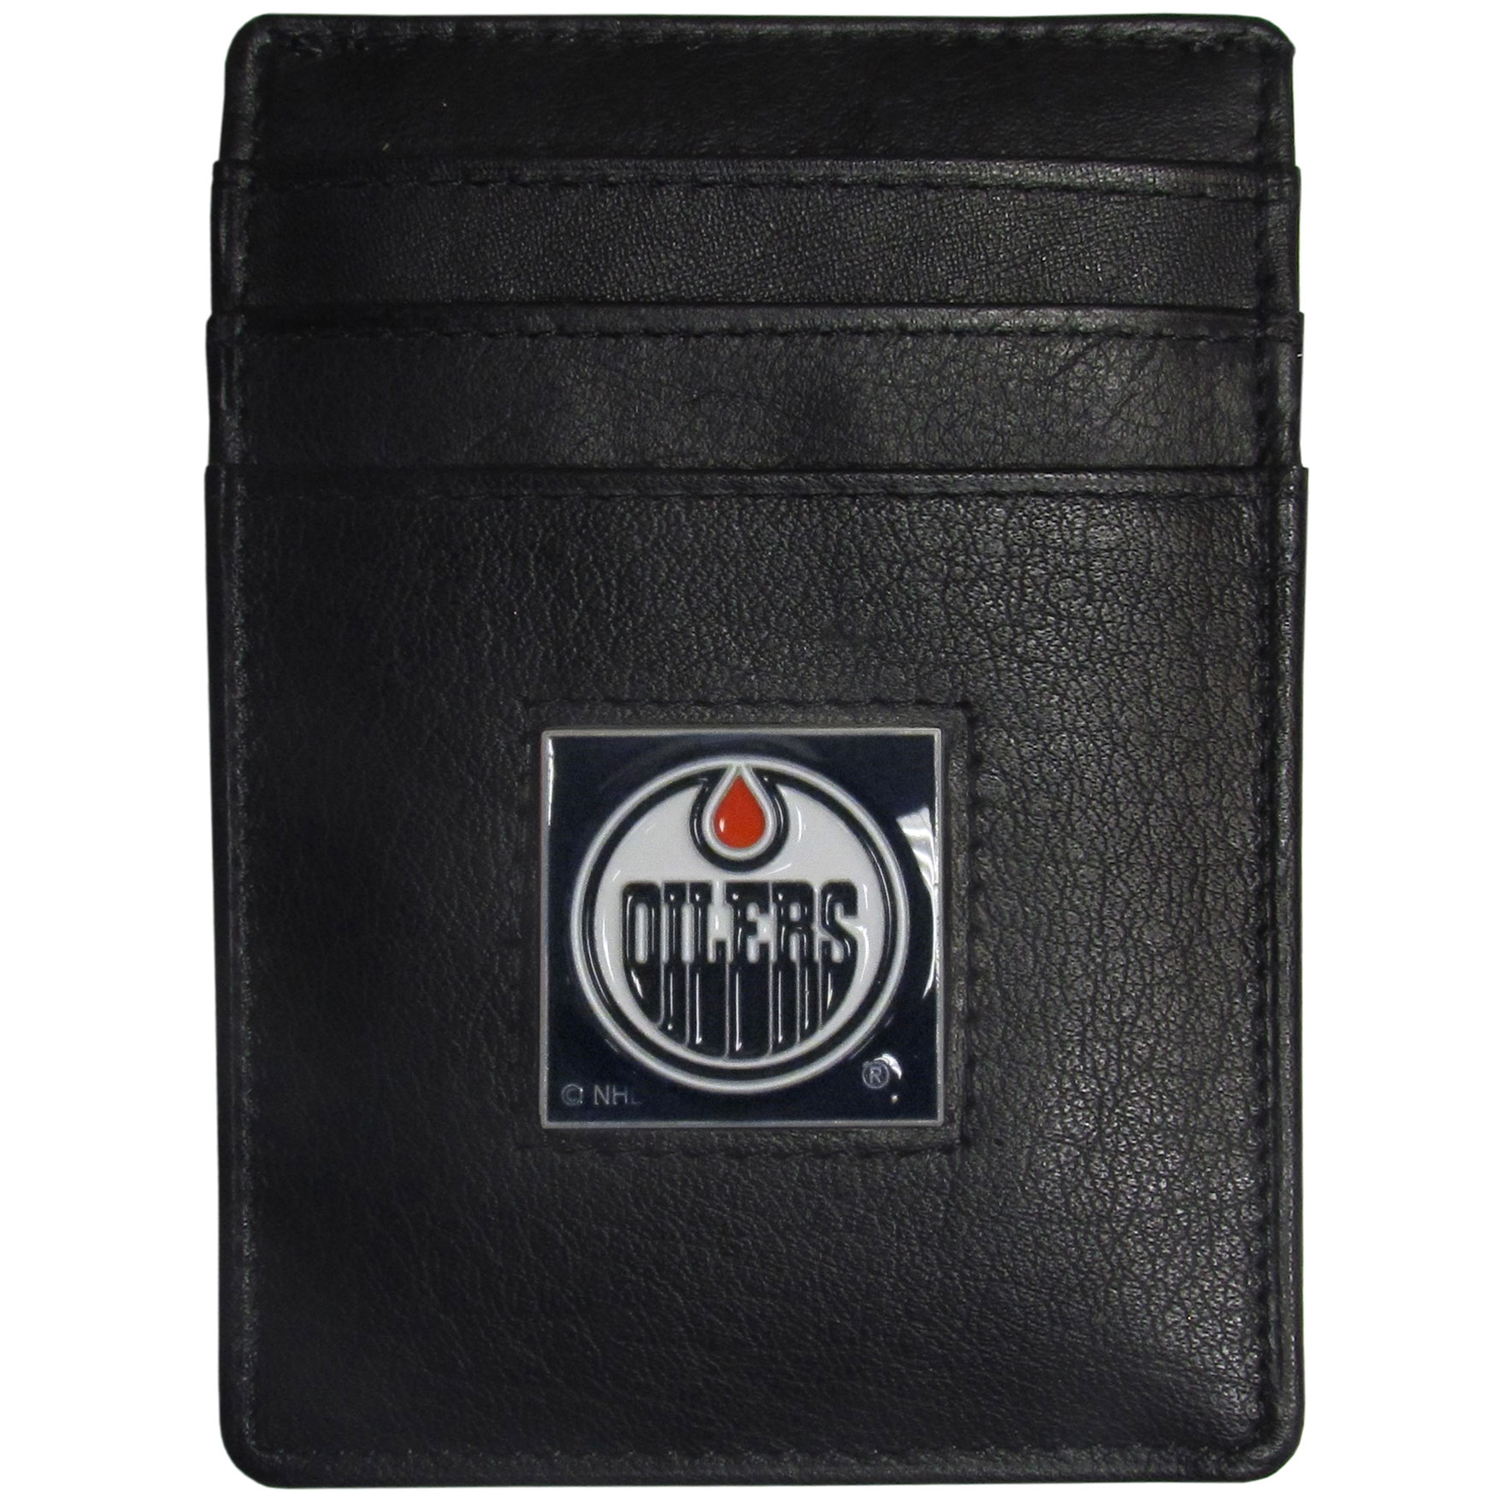 Edmonton Oilers® Leather Money Clip/Cardholder - Our officially licensed Money Clip/Card Holders won't make you choose between paper or plastic because they stow both easily. Features our sculpted and enameled Edmonton Oilers® emblem on the front of the wallet.